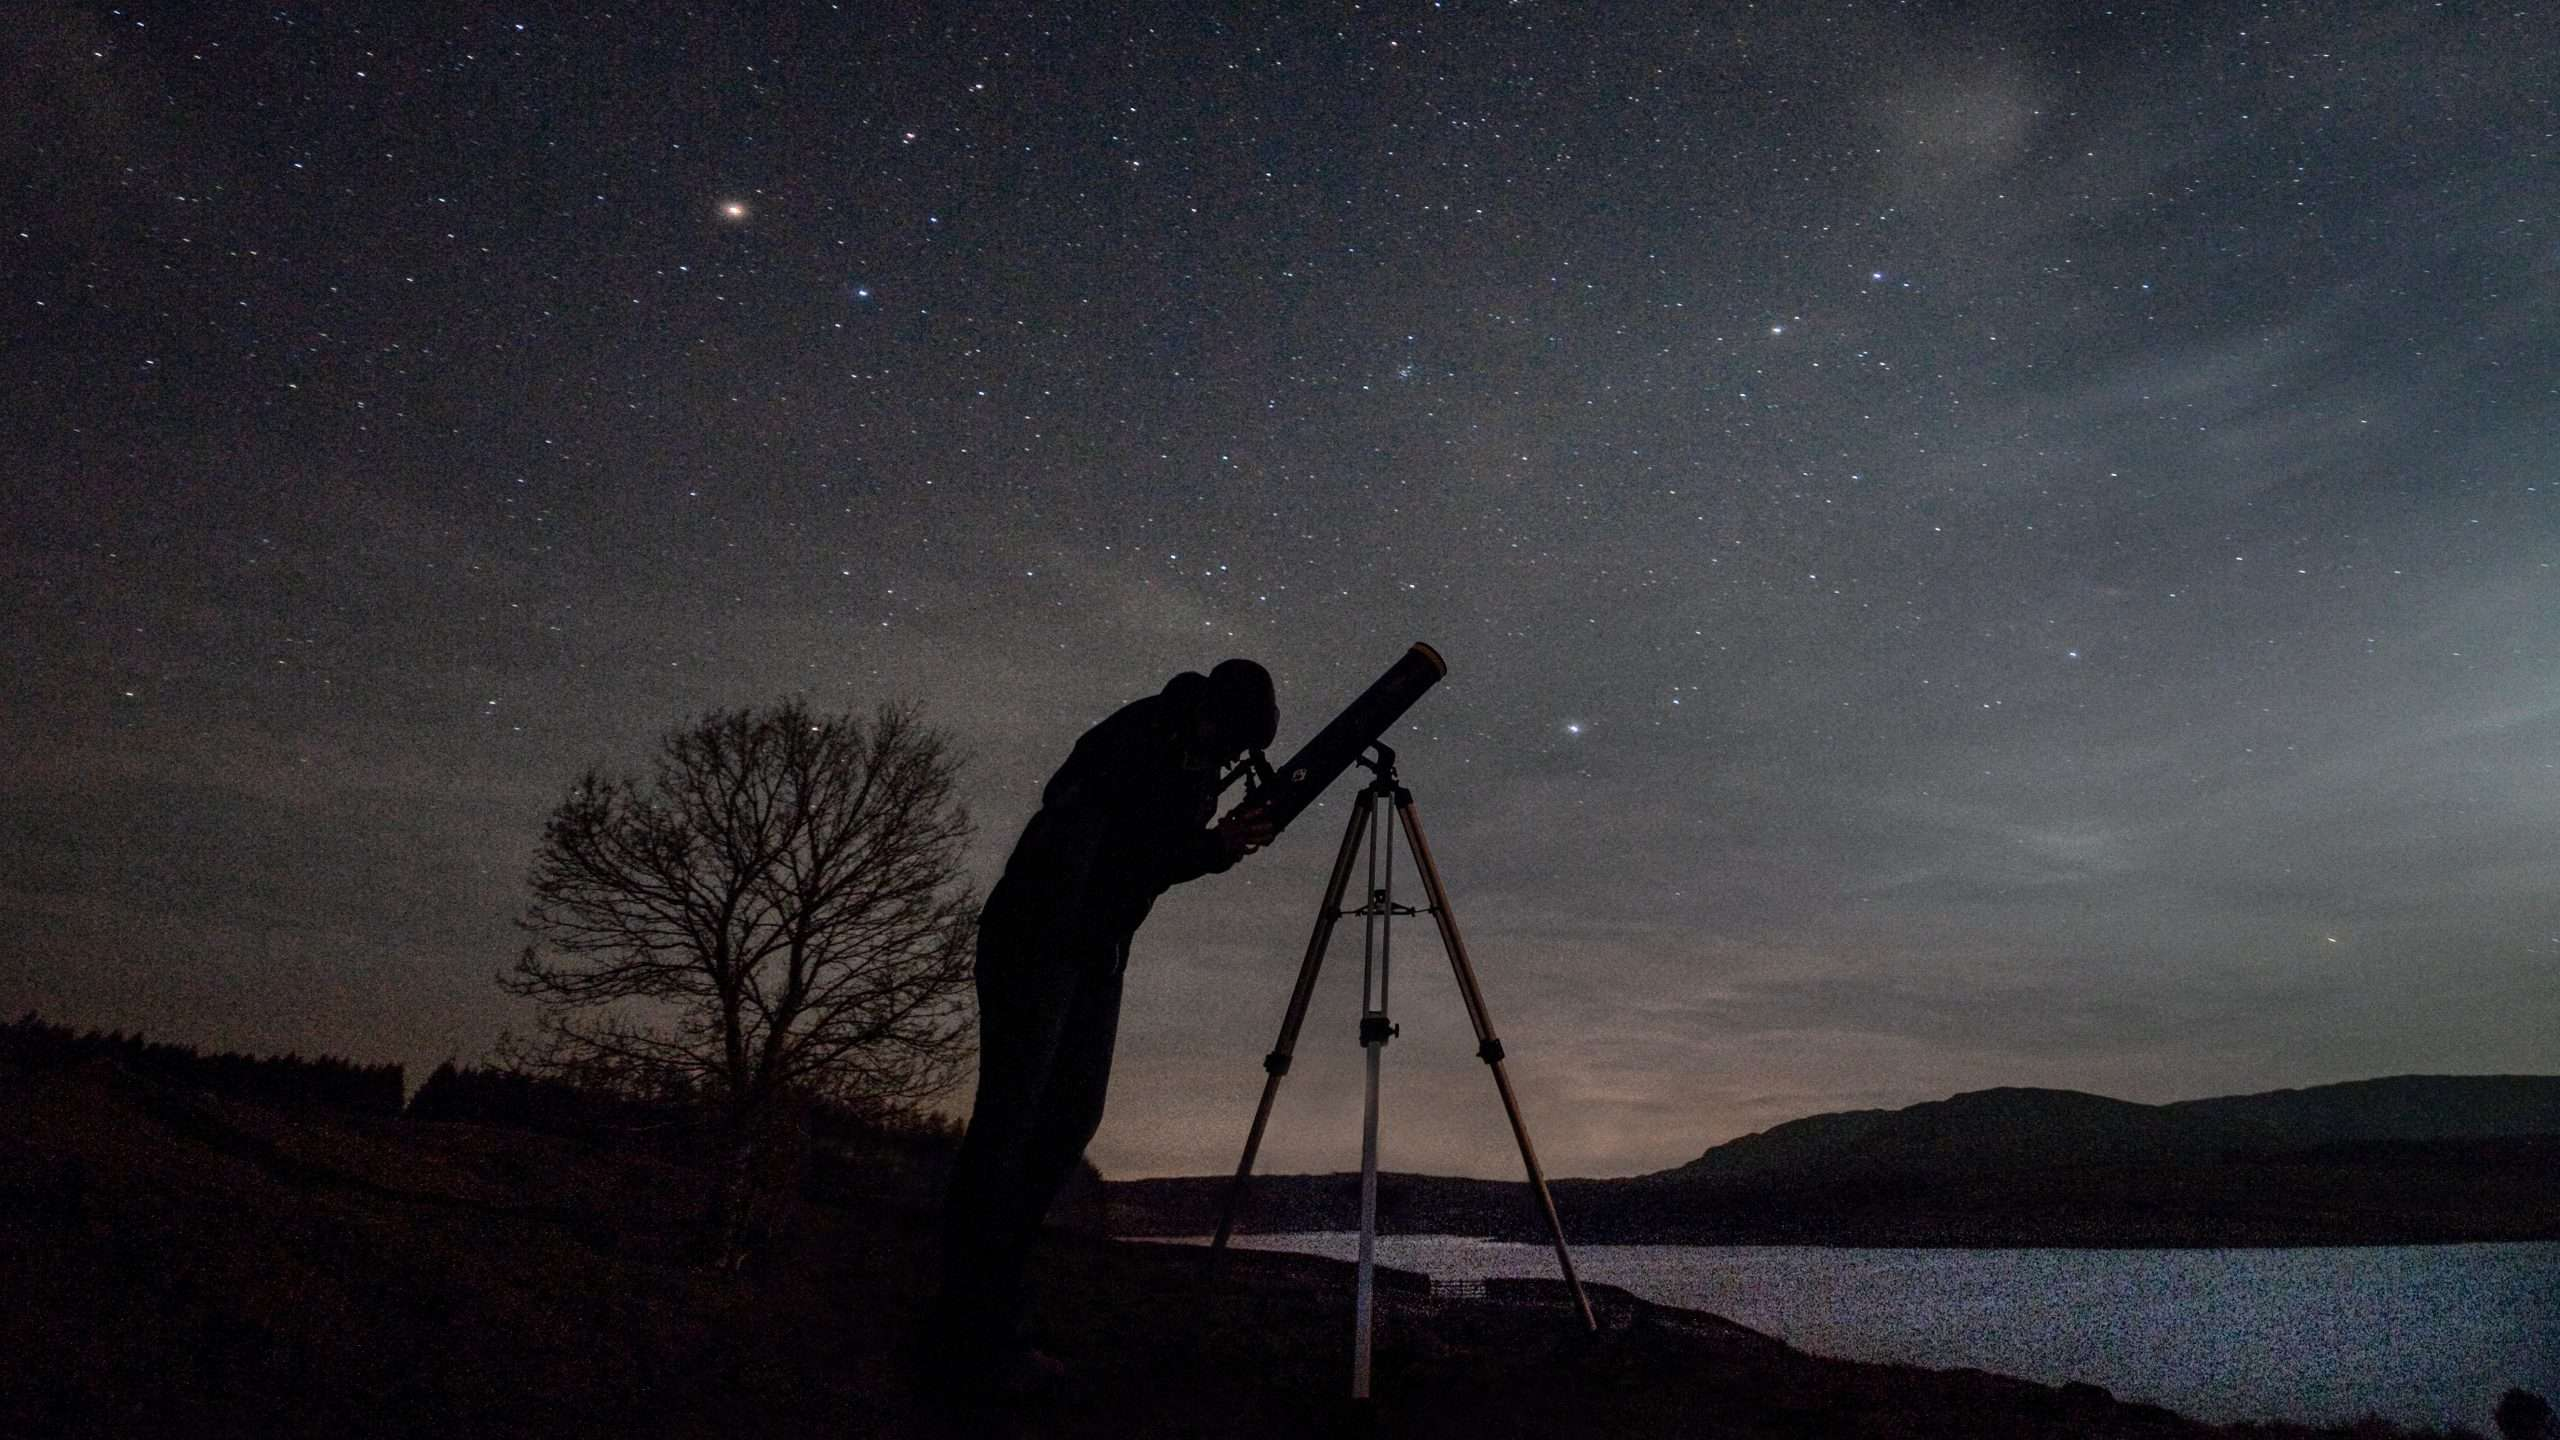 Man standing on the shore of a loch at night star gazing